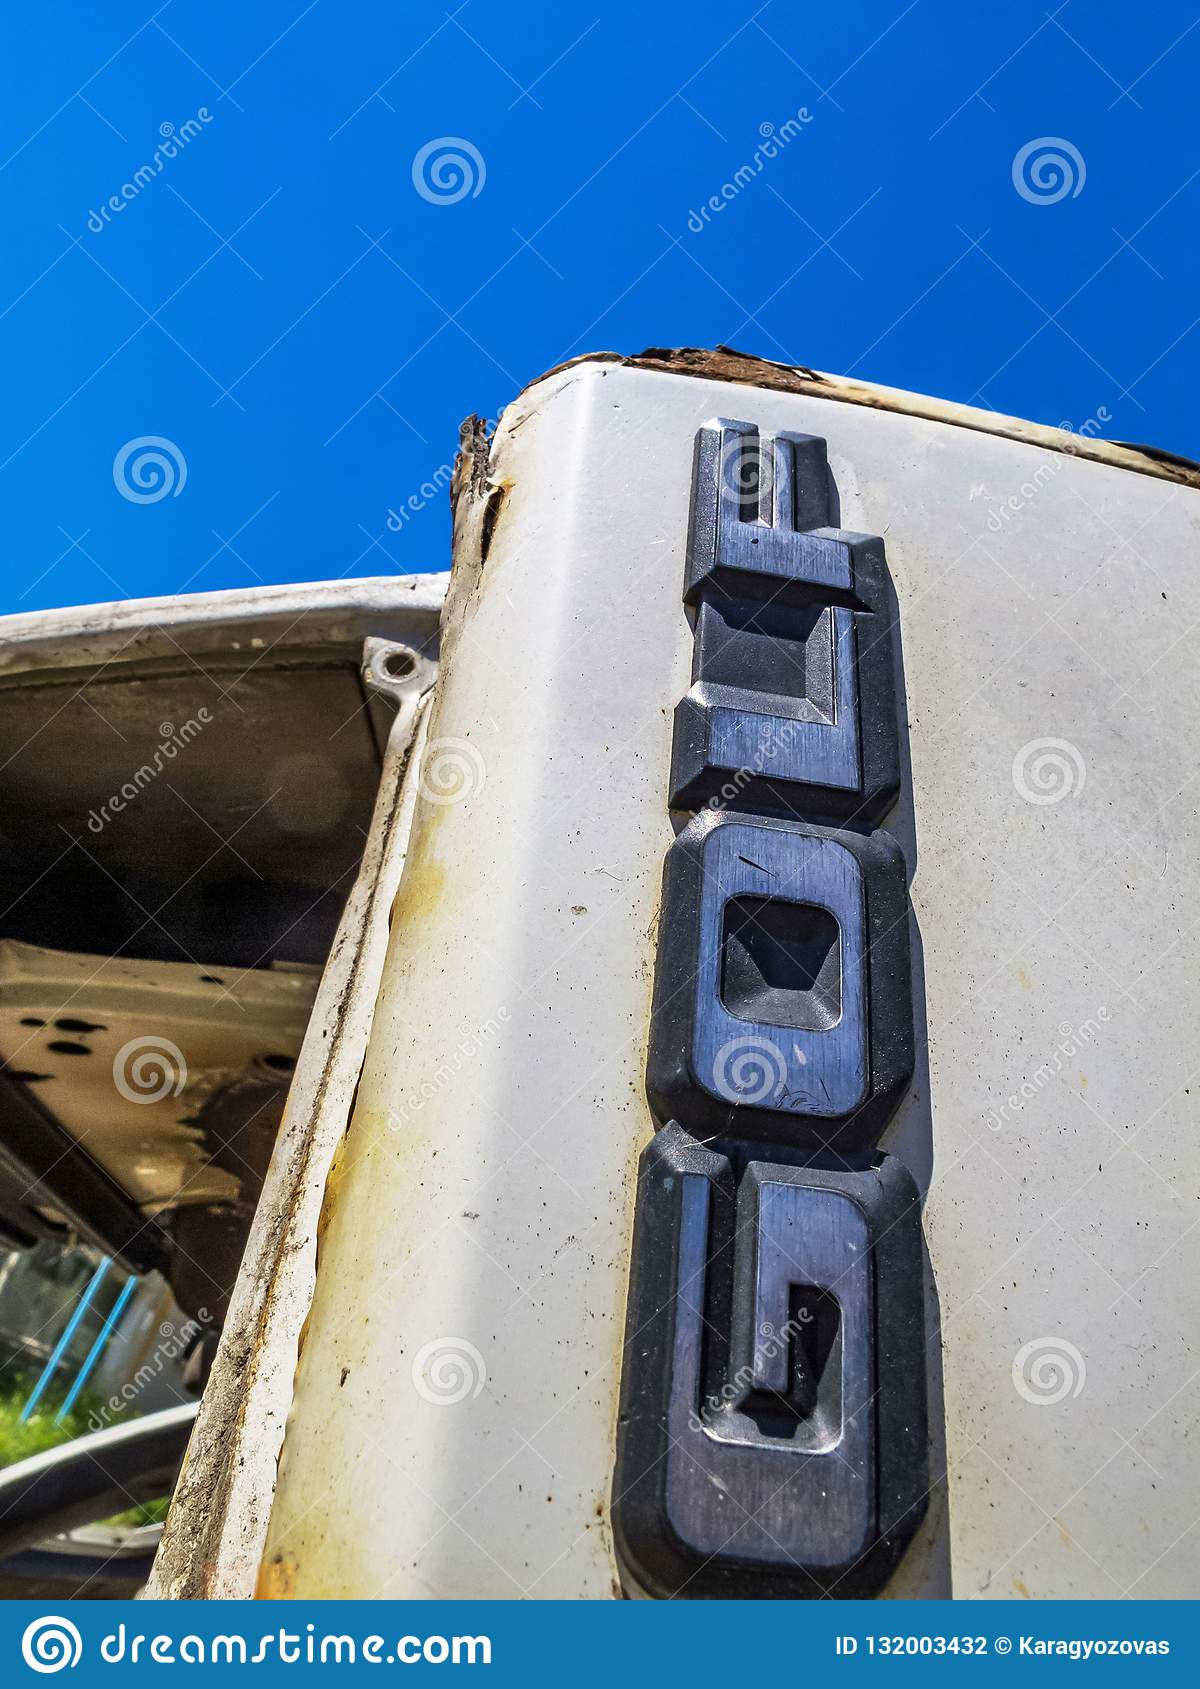 Close-up of the rear badge of a white dilapidated Volkswagen Golf Mk2 in the Bulgarian village of Debnevo